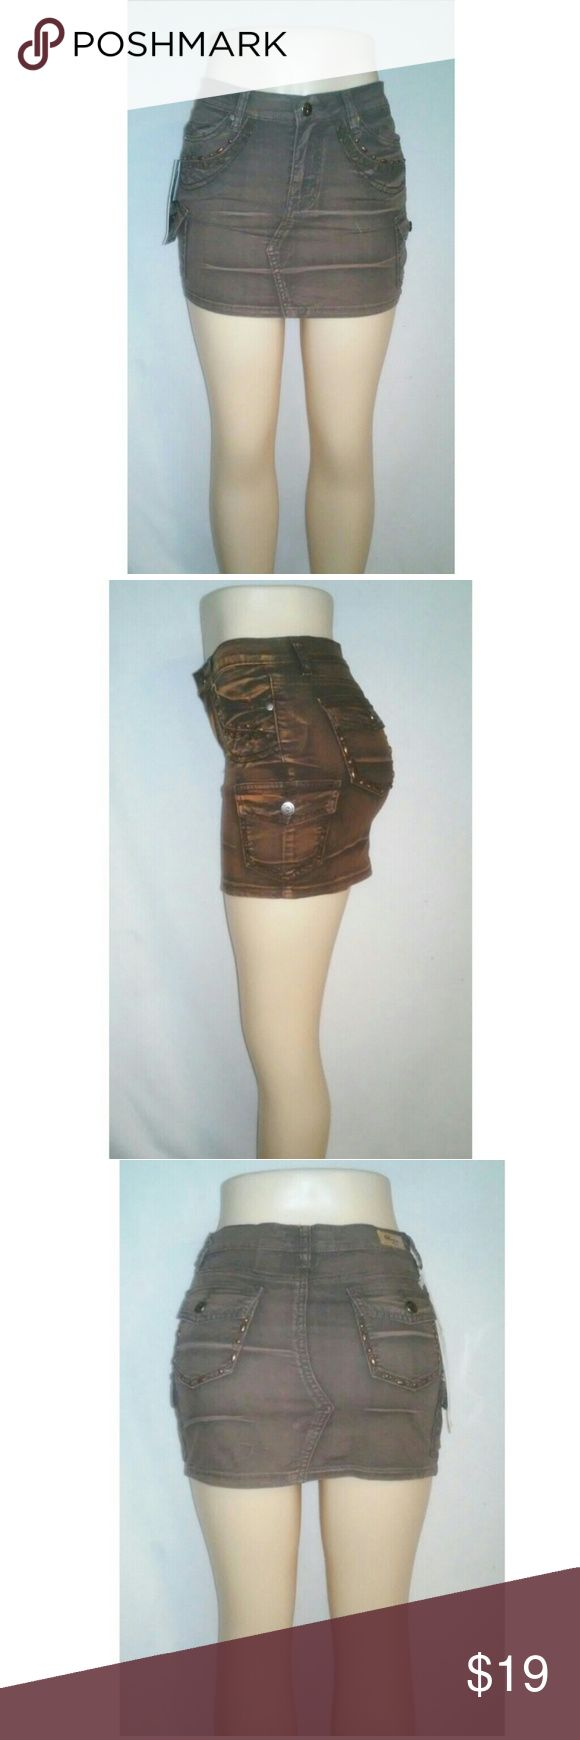 Jeweled Encrusted Jean Mini Skirt Cotton and Spandex Material Skirts Mini